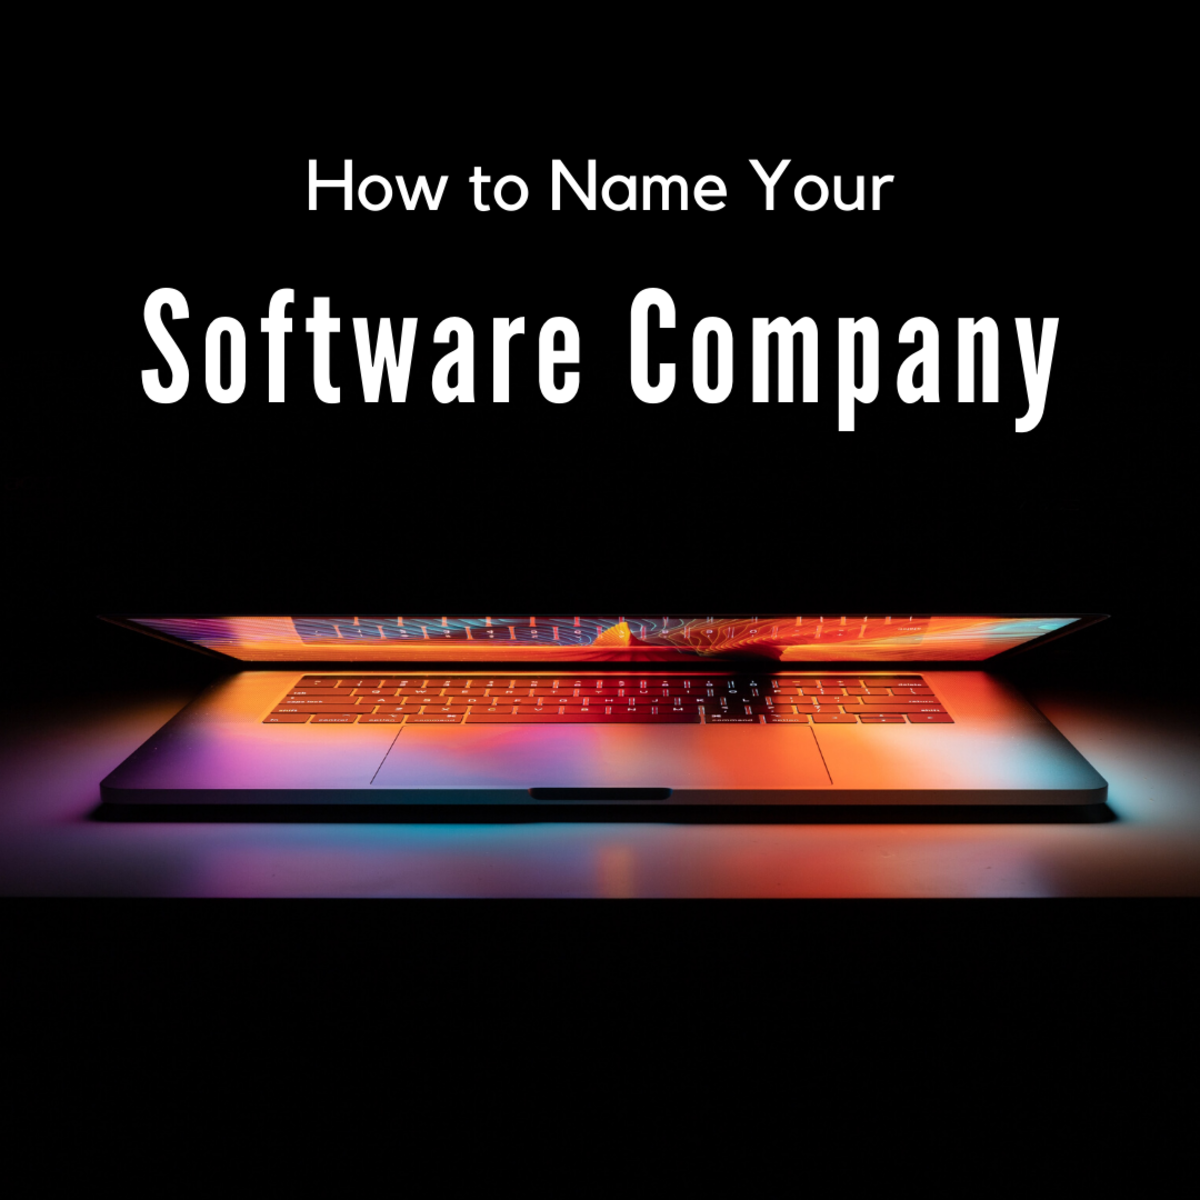 100 Cool Software Company Names